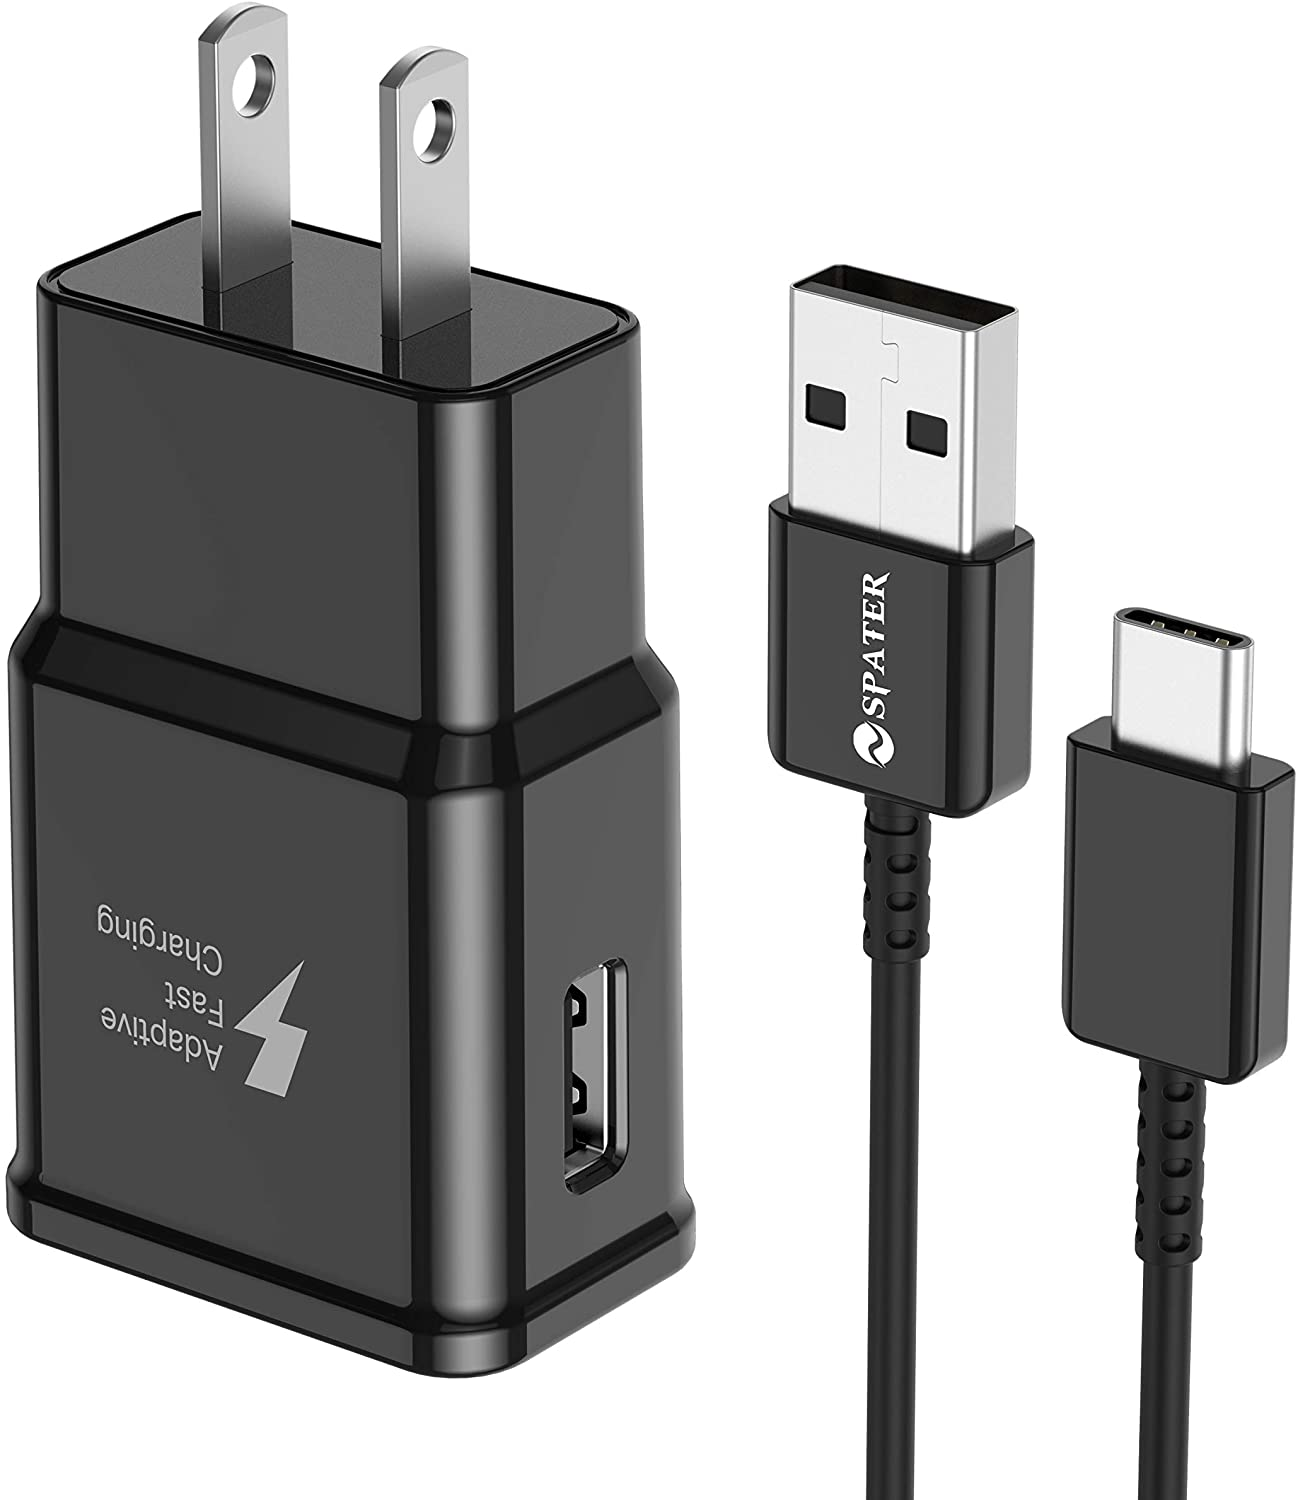 Spater Adaptive Fast Charging Wall Charger Kit Set with USB-C Cable, Compatible with Samsung Galaxy